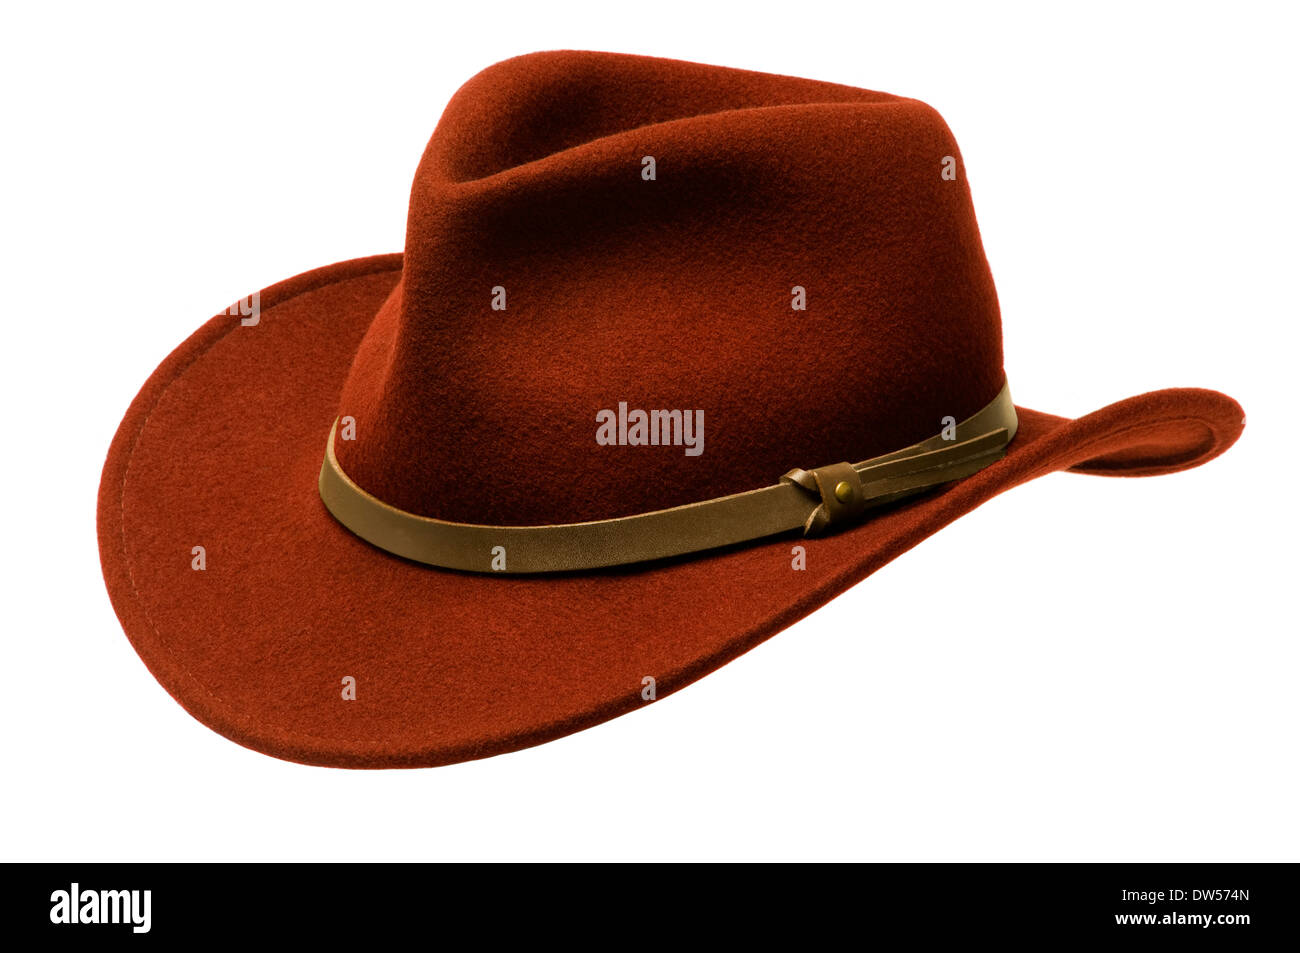 8a7240ec1 Brown Wide Brim Hat Stock Photos & Brown Wide Brim Hat Stock Images ...